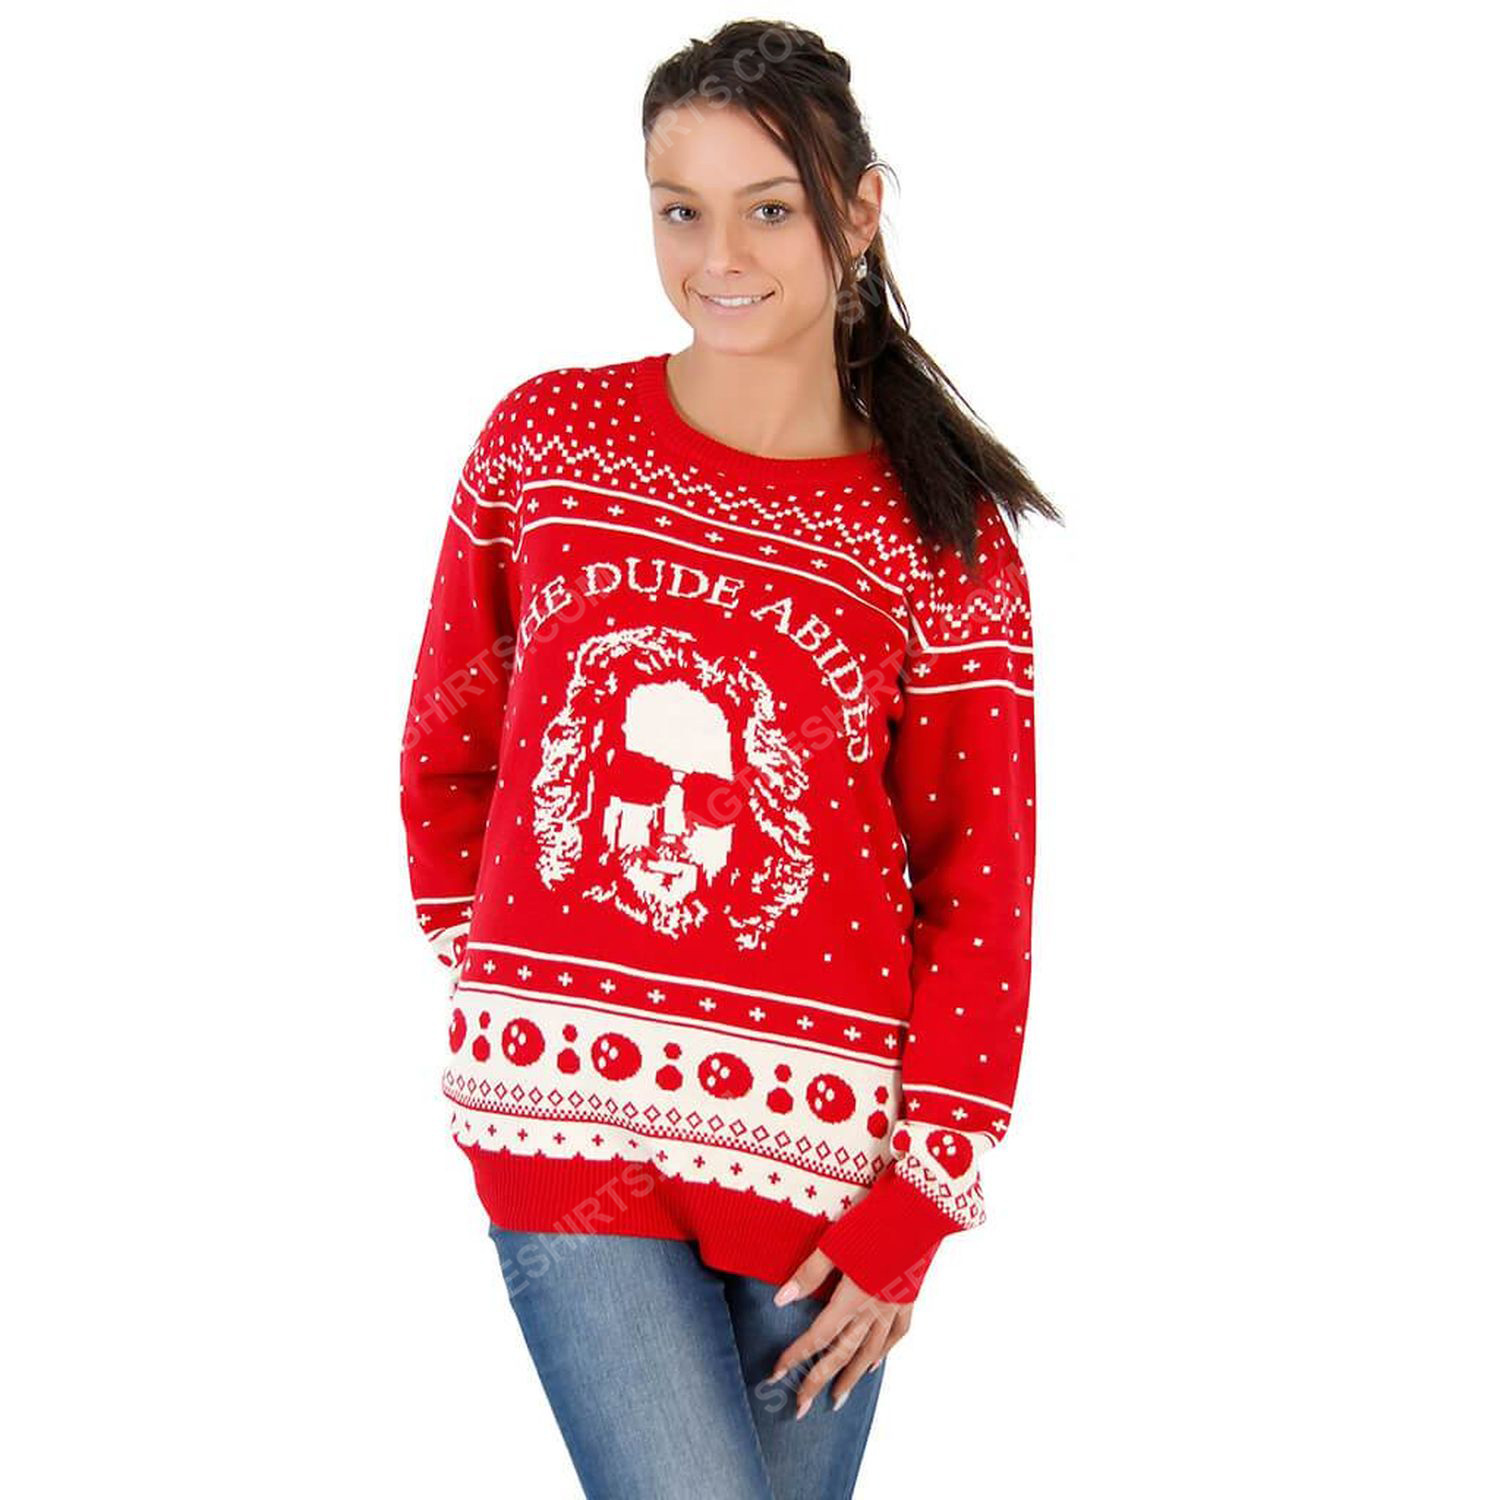 The big lebowski the dude abides full print ugly christmas sweater 2